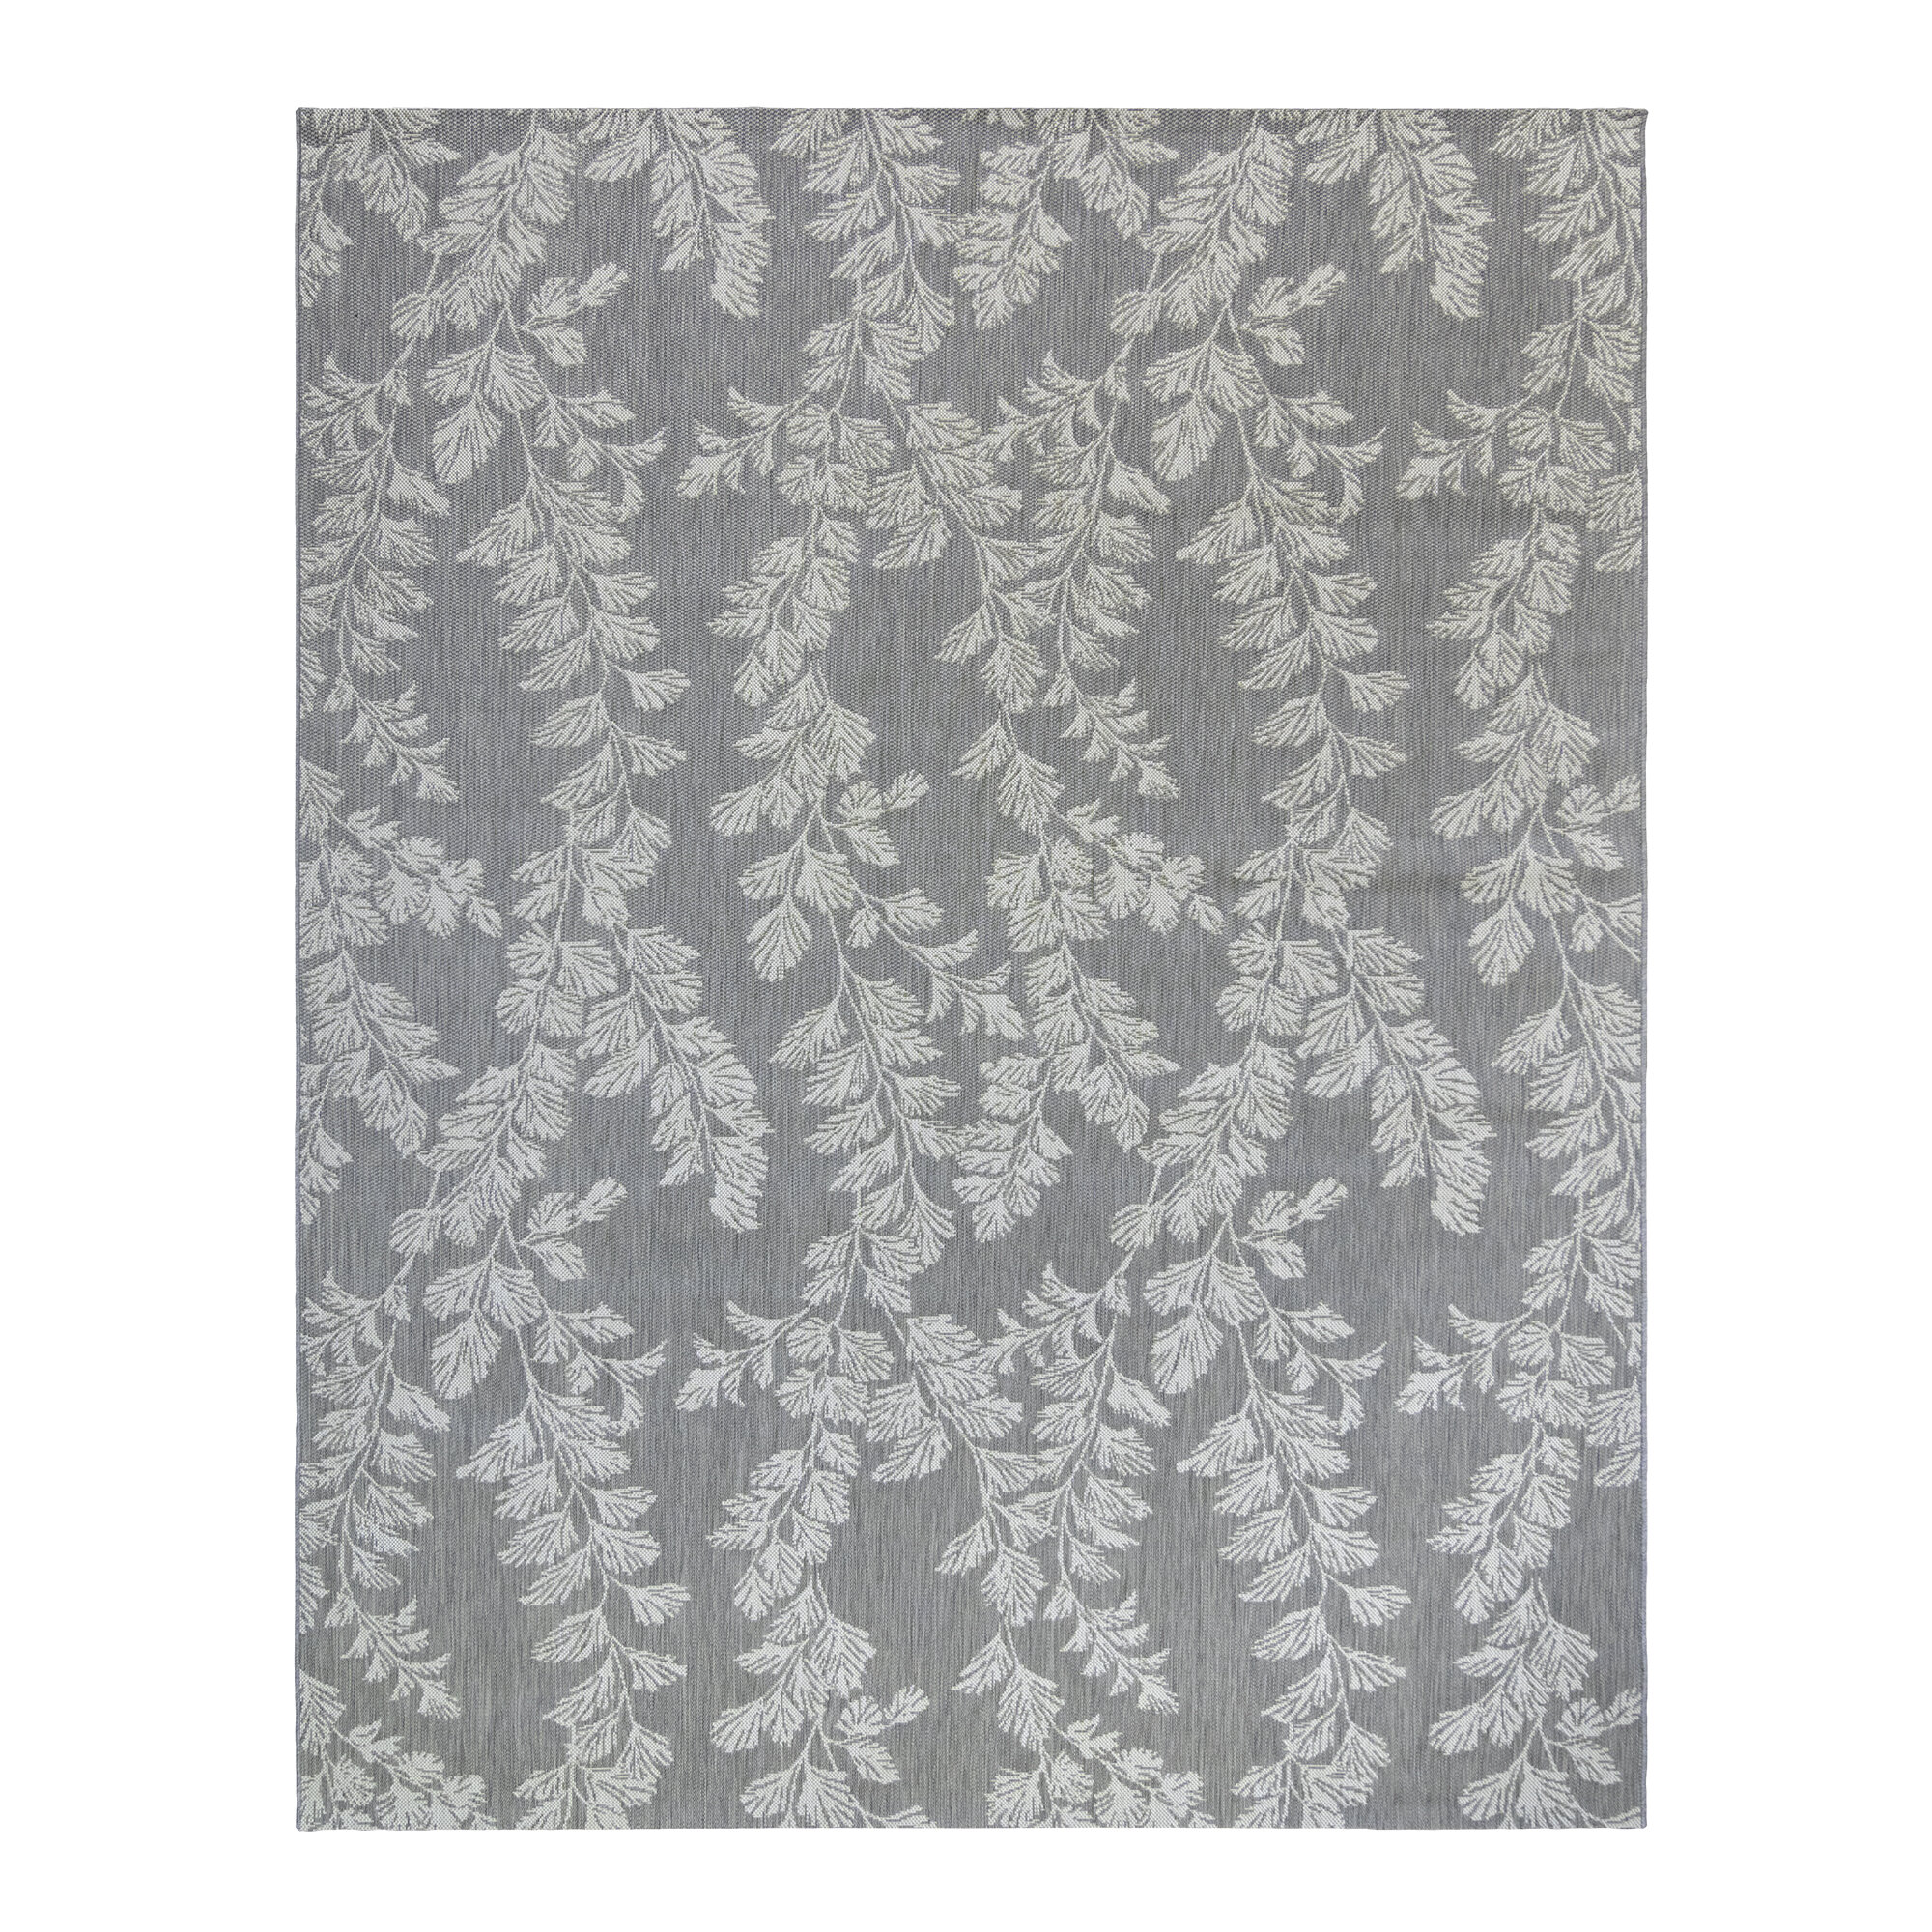 Flat Woven Floral Plant Outdoor Rugs You Ll Love In 2021 Wayfair